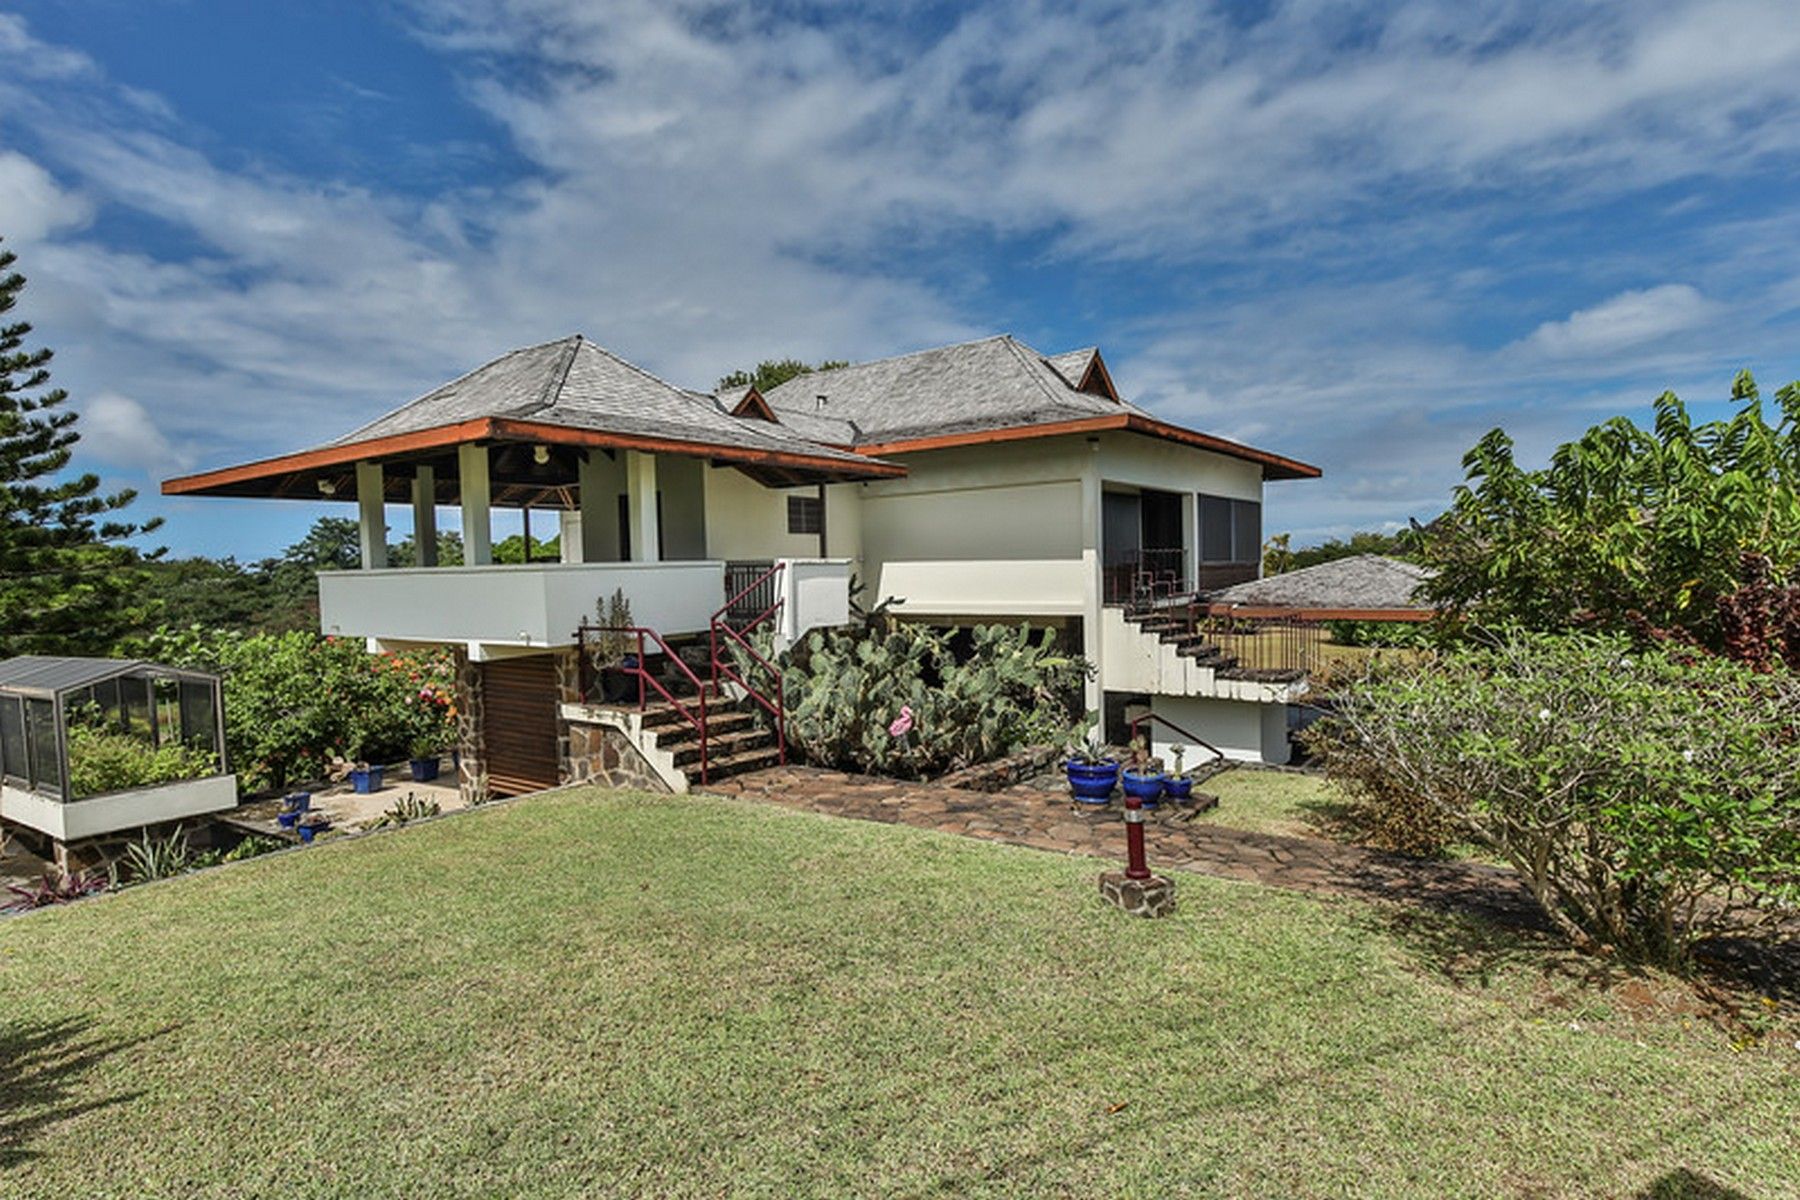 2 bedroom house for sale in st lucia by owner